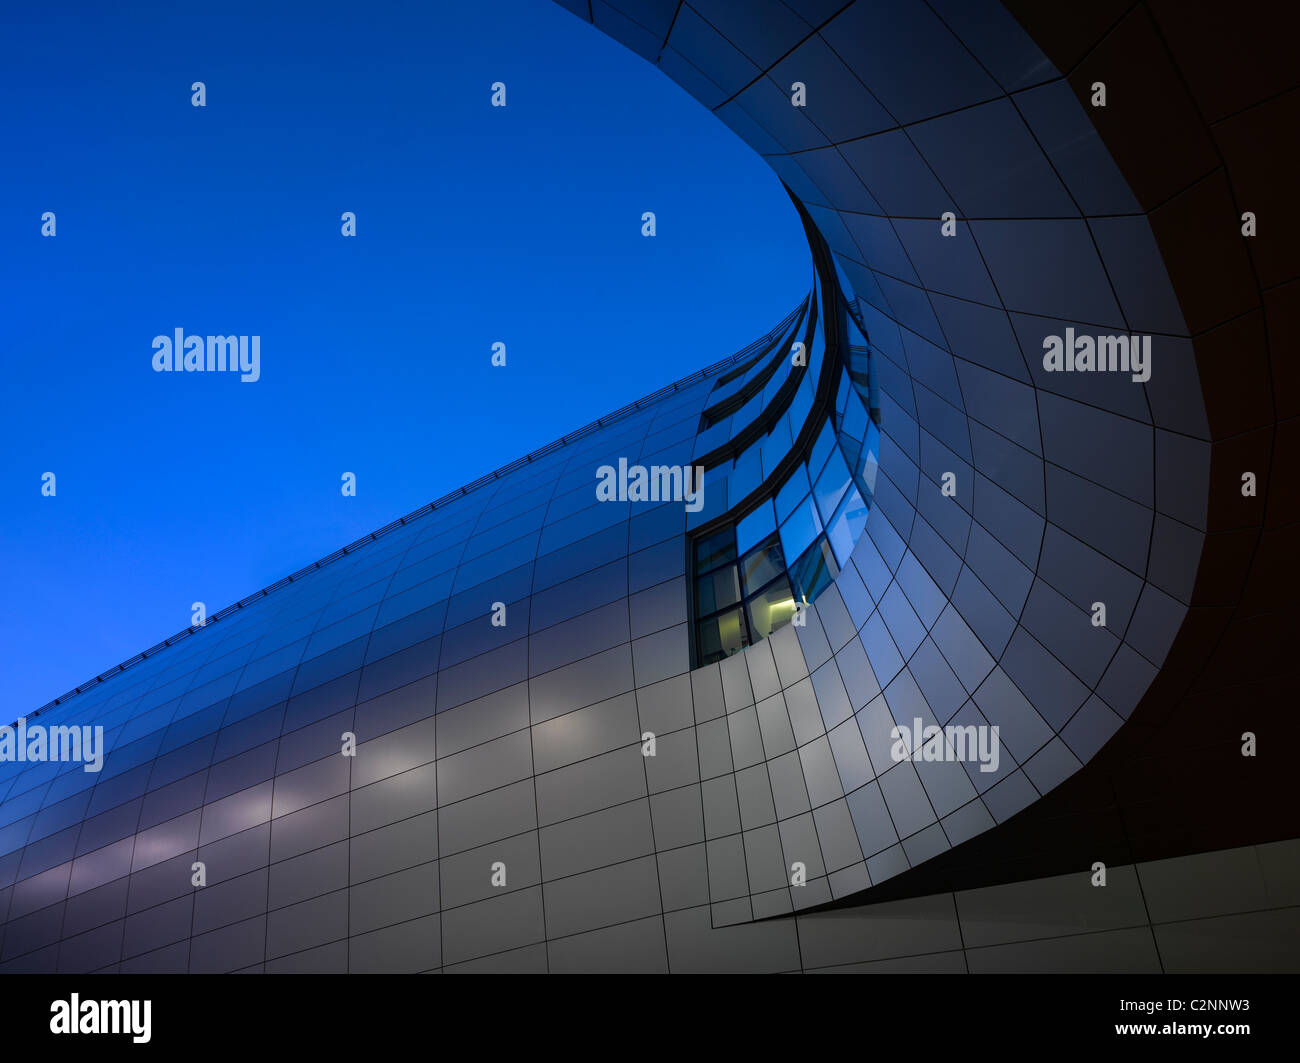 Dublin Airport, Terminal 2. Exterior of walkway. - Stock Image